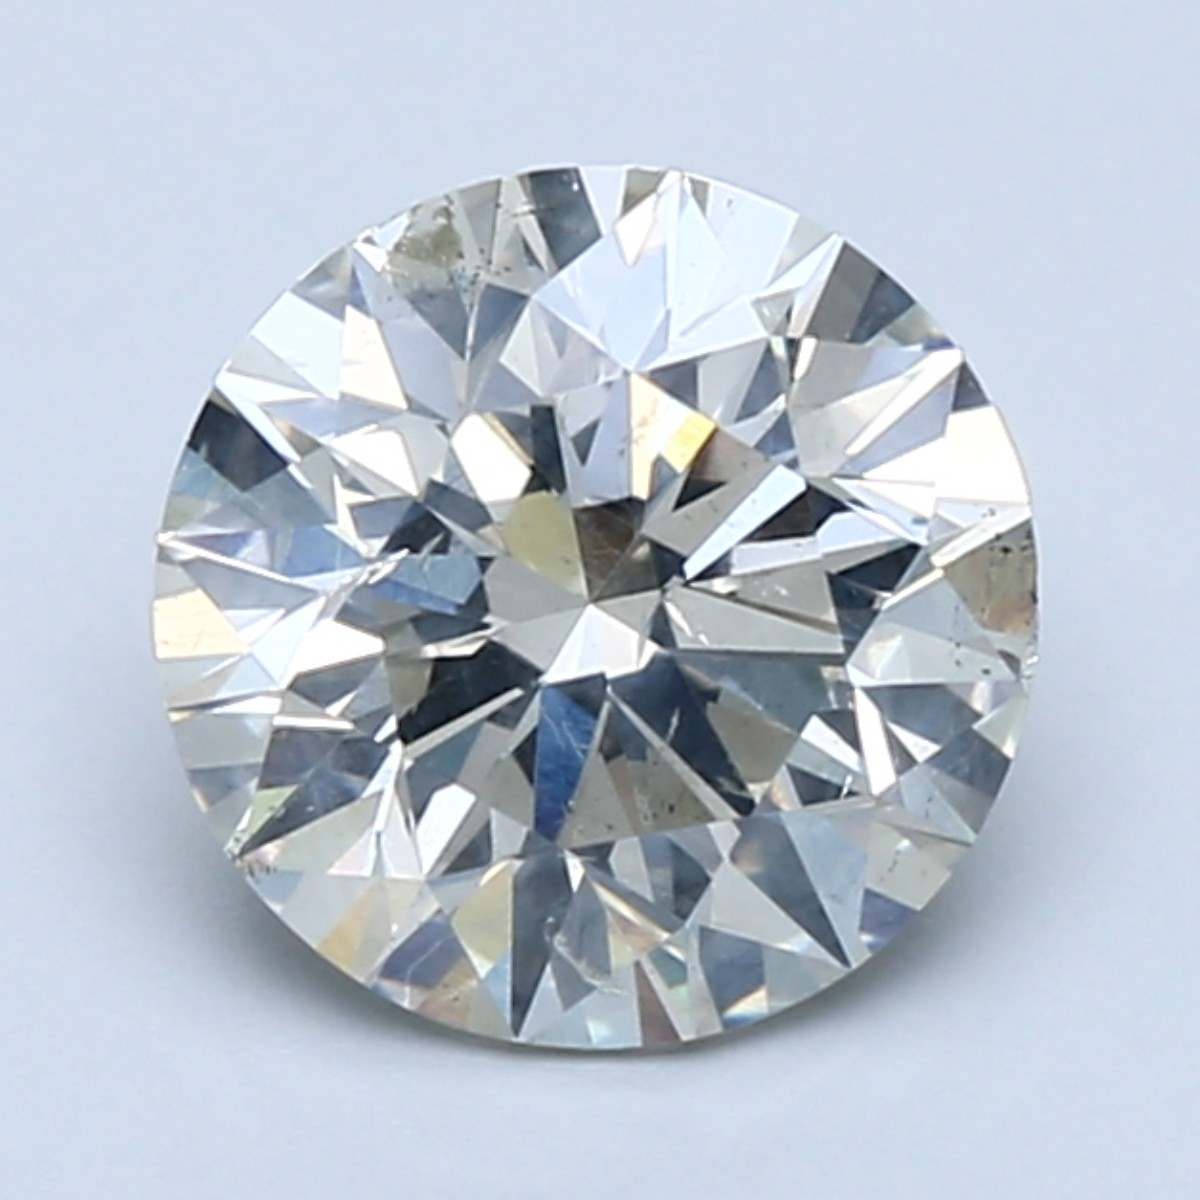 2 carat K color diamond with SI2 clarity